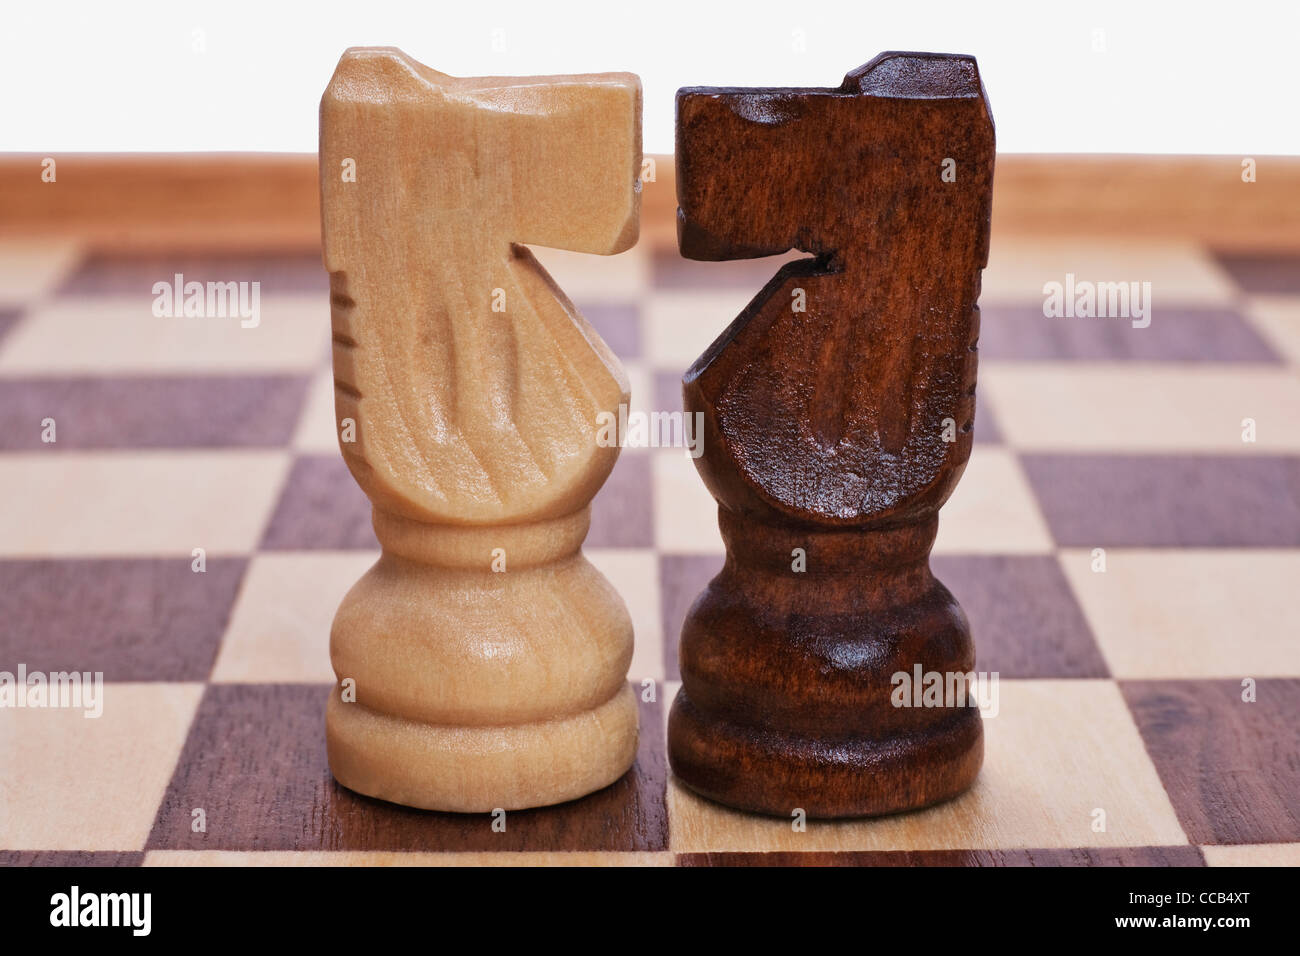 a chessboard, on it are a white and a black horse counterpart - Stock Image